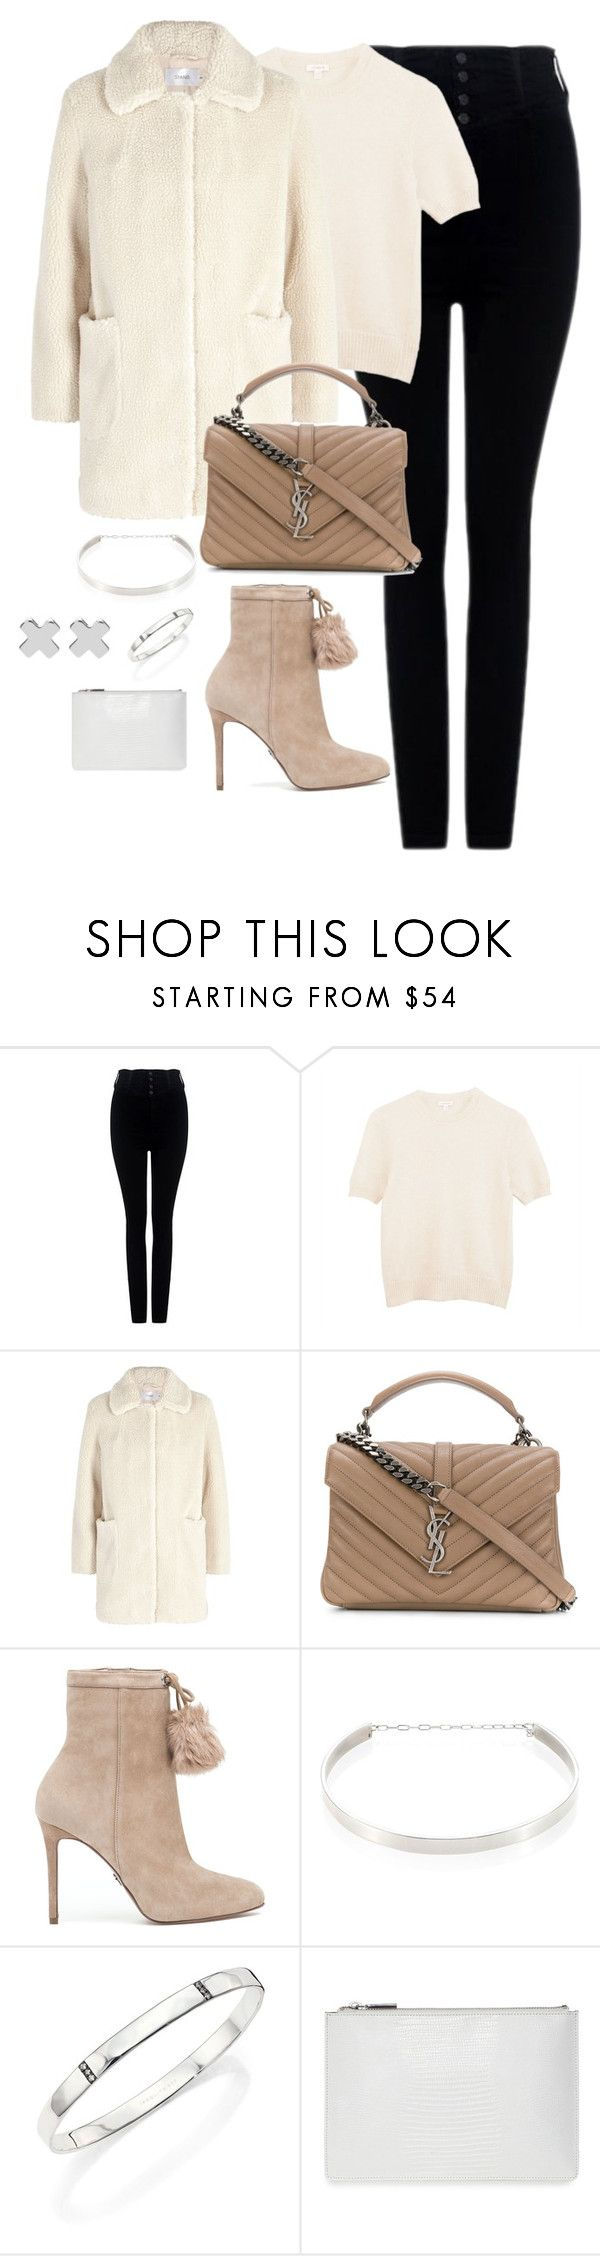 """""""Untitled #4497"""" by magsmccray ❤ liked on Polyvore featuring RED Valentino, Stand, Yves Saint Laurent, MICHAEL Michael Kors, Jennifer Zeuner, Ippolita, Whistles and Witchery"""